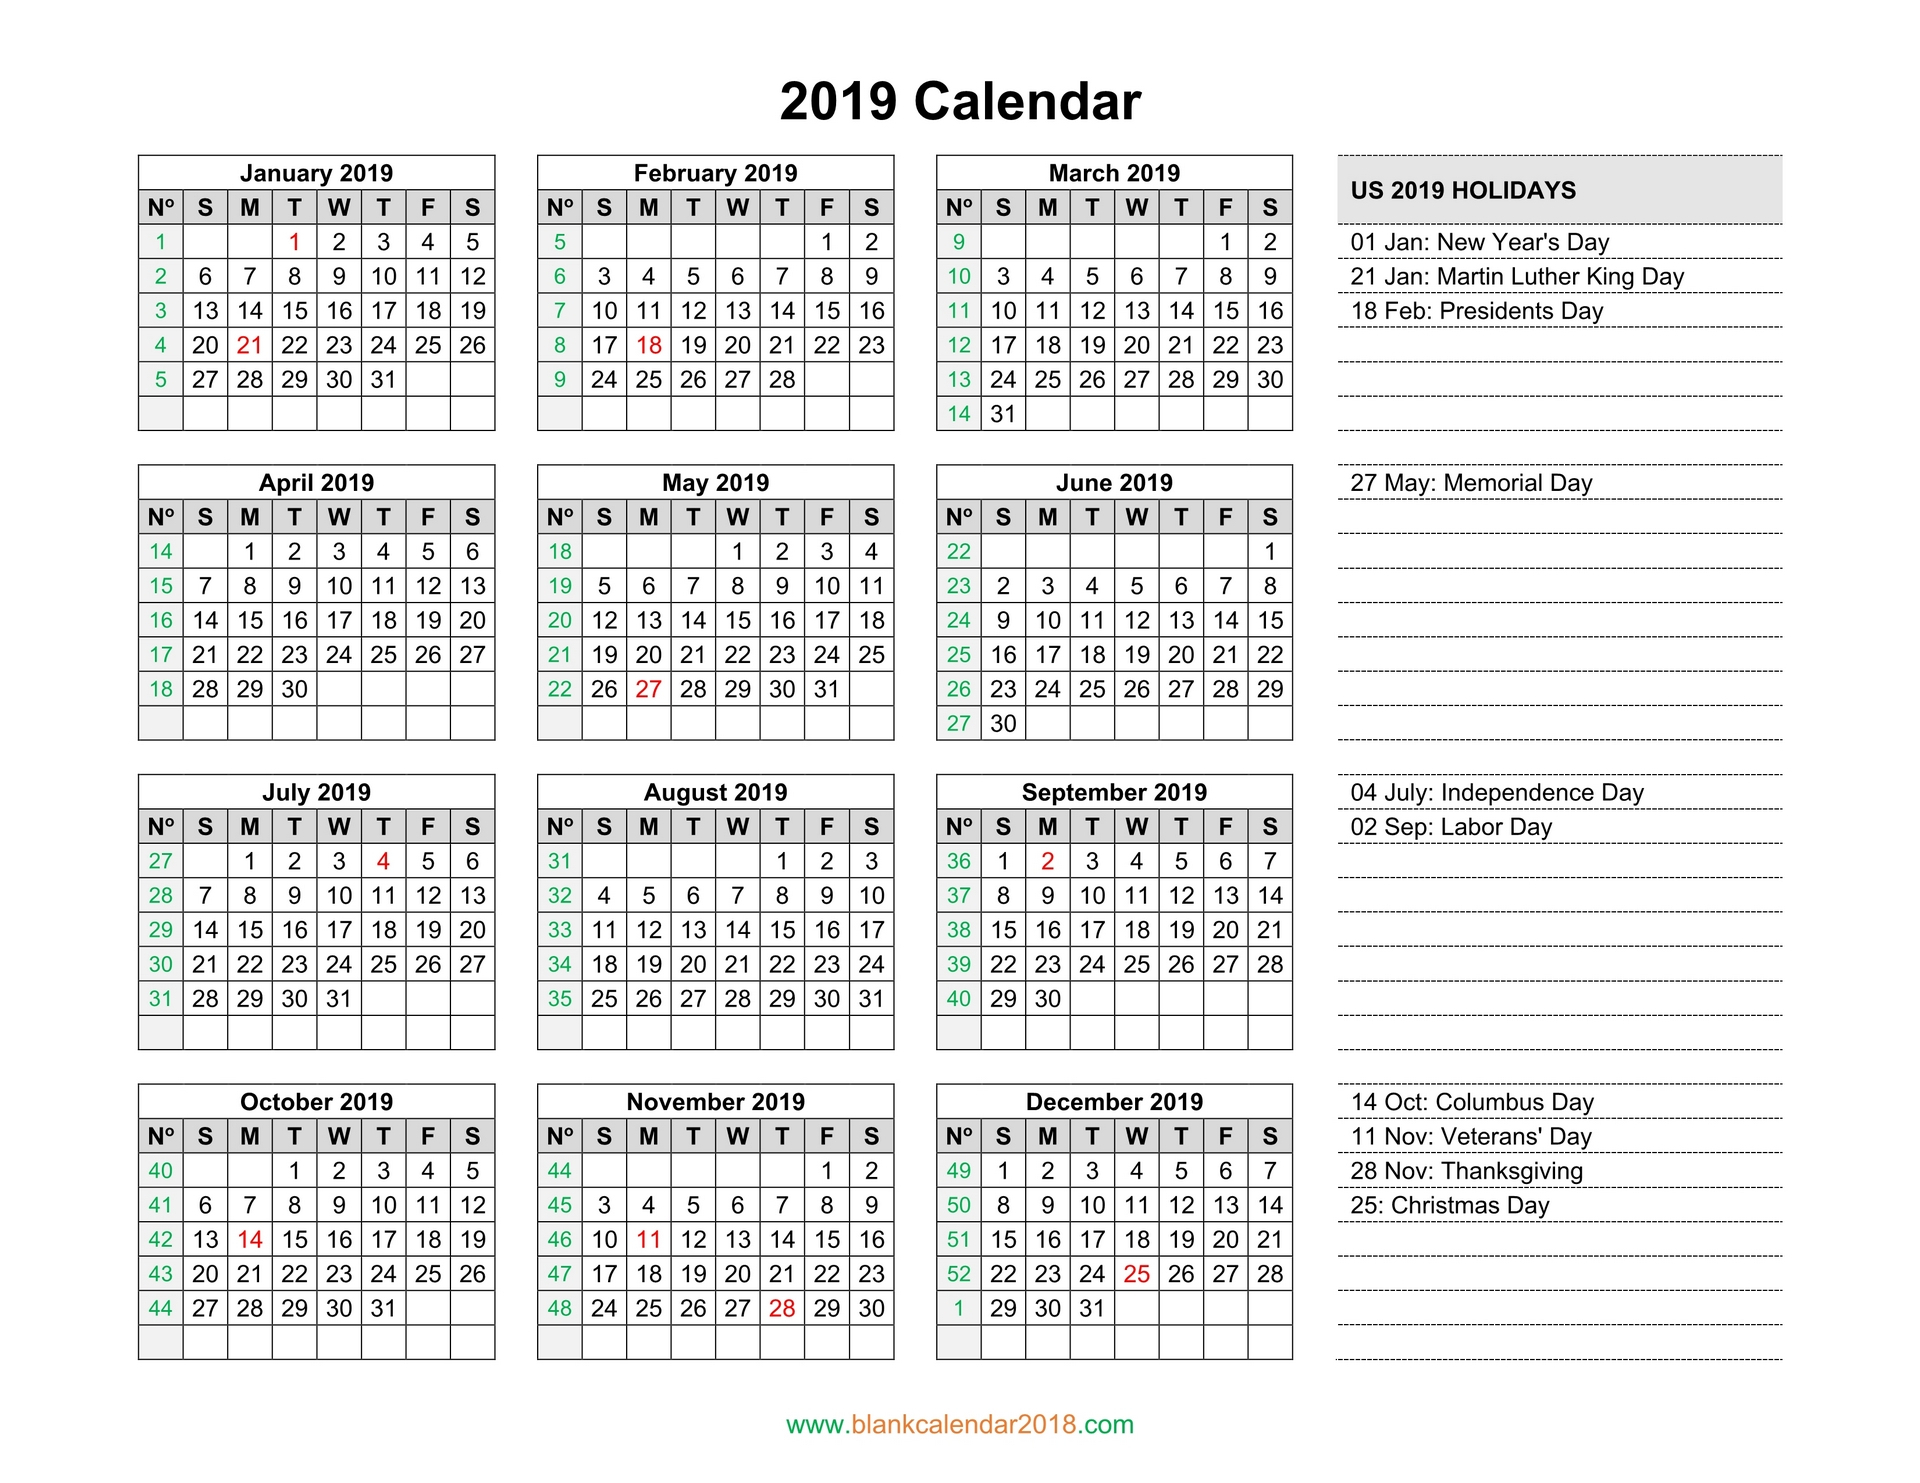 Blank Calendar 2019 intended for Printable Year Calendar 2019 - 2020 With Space To Write